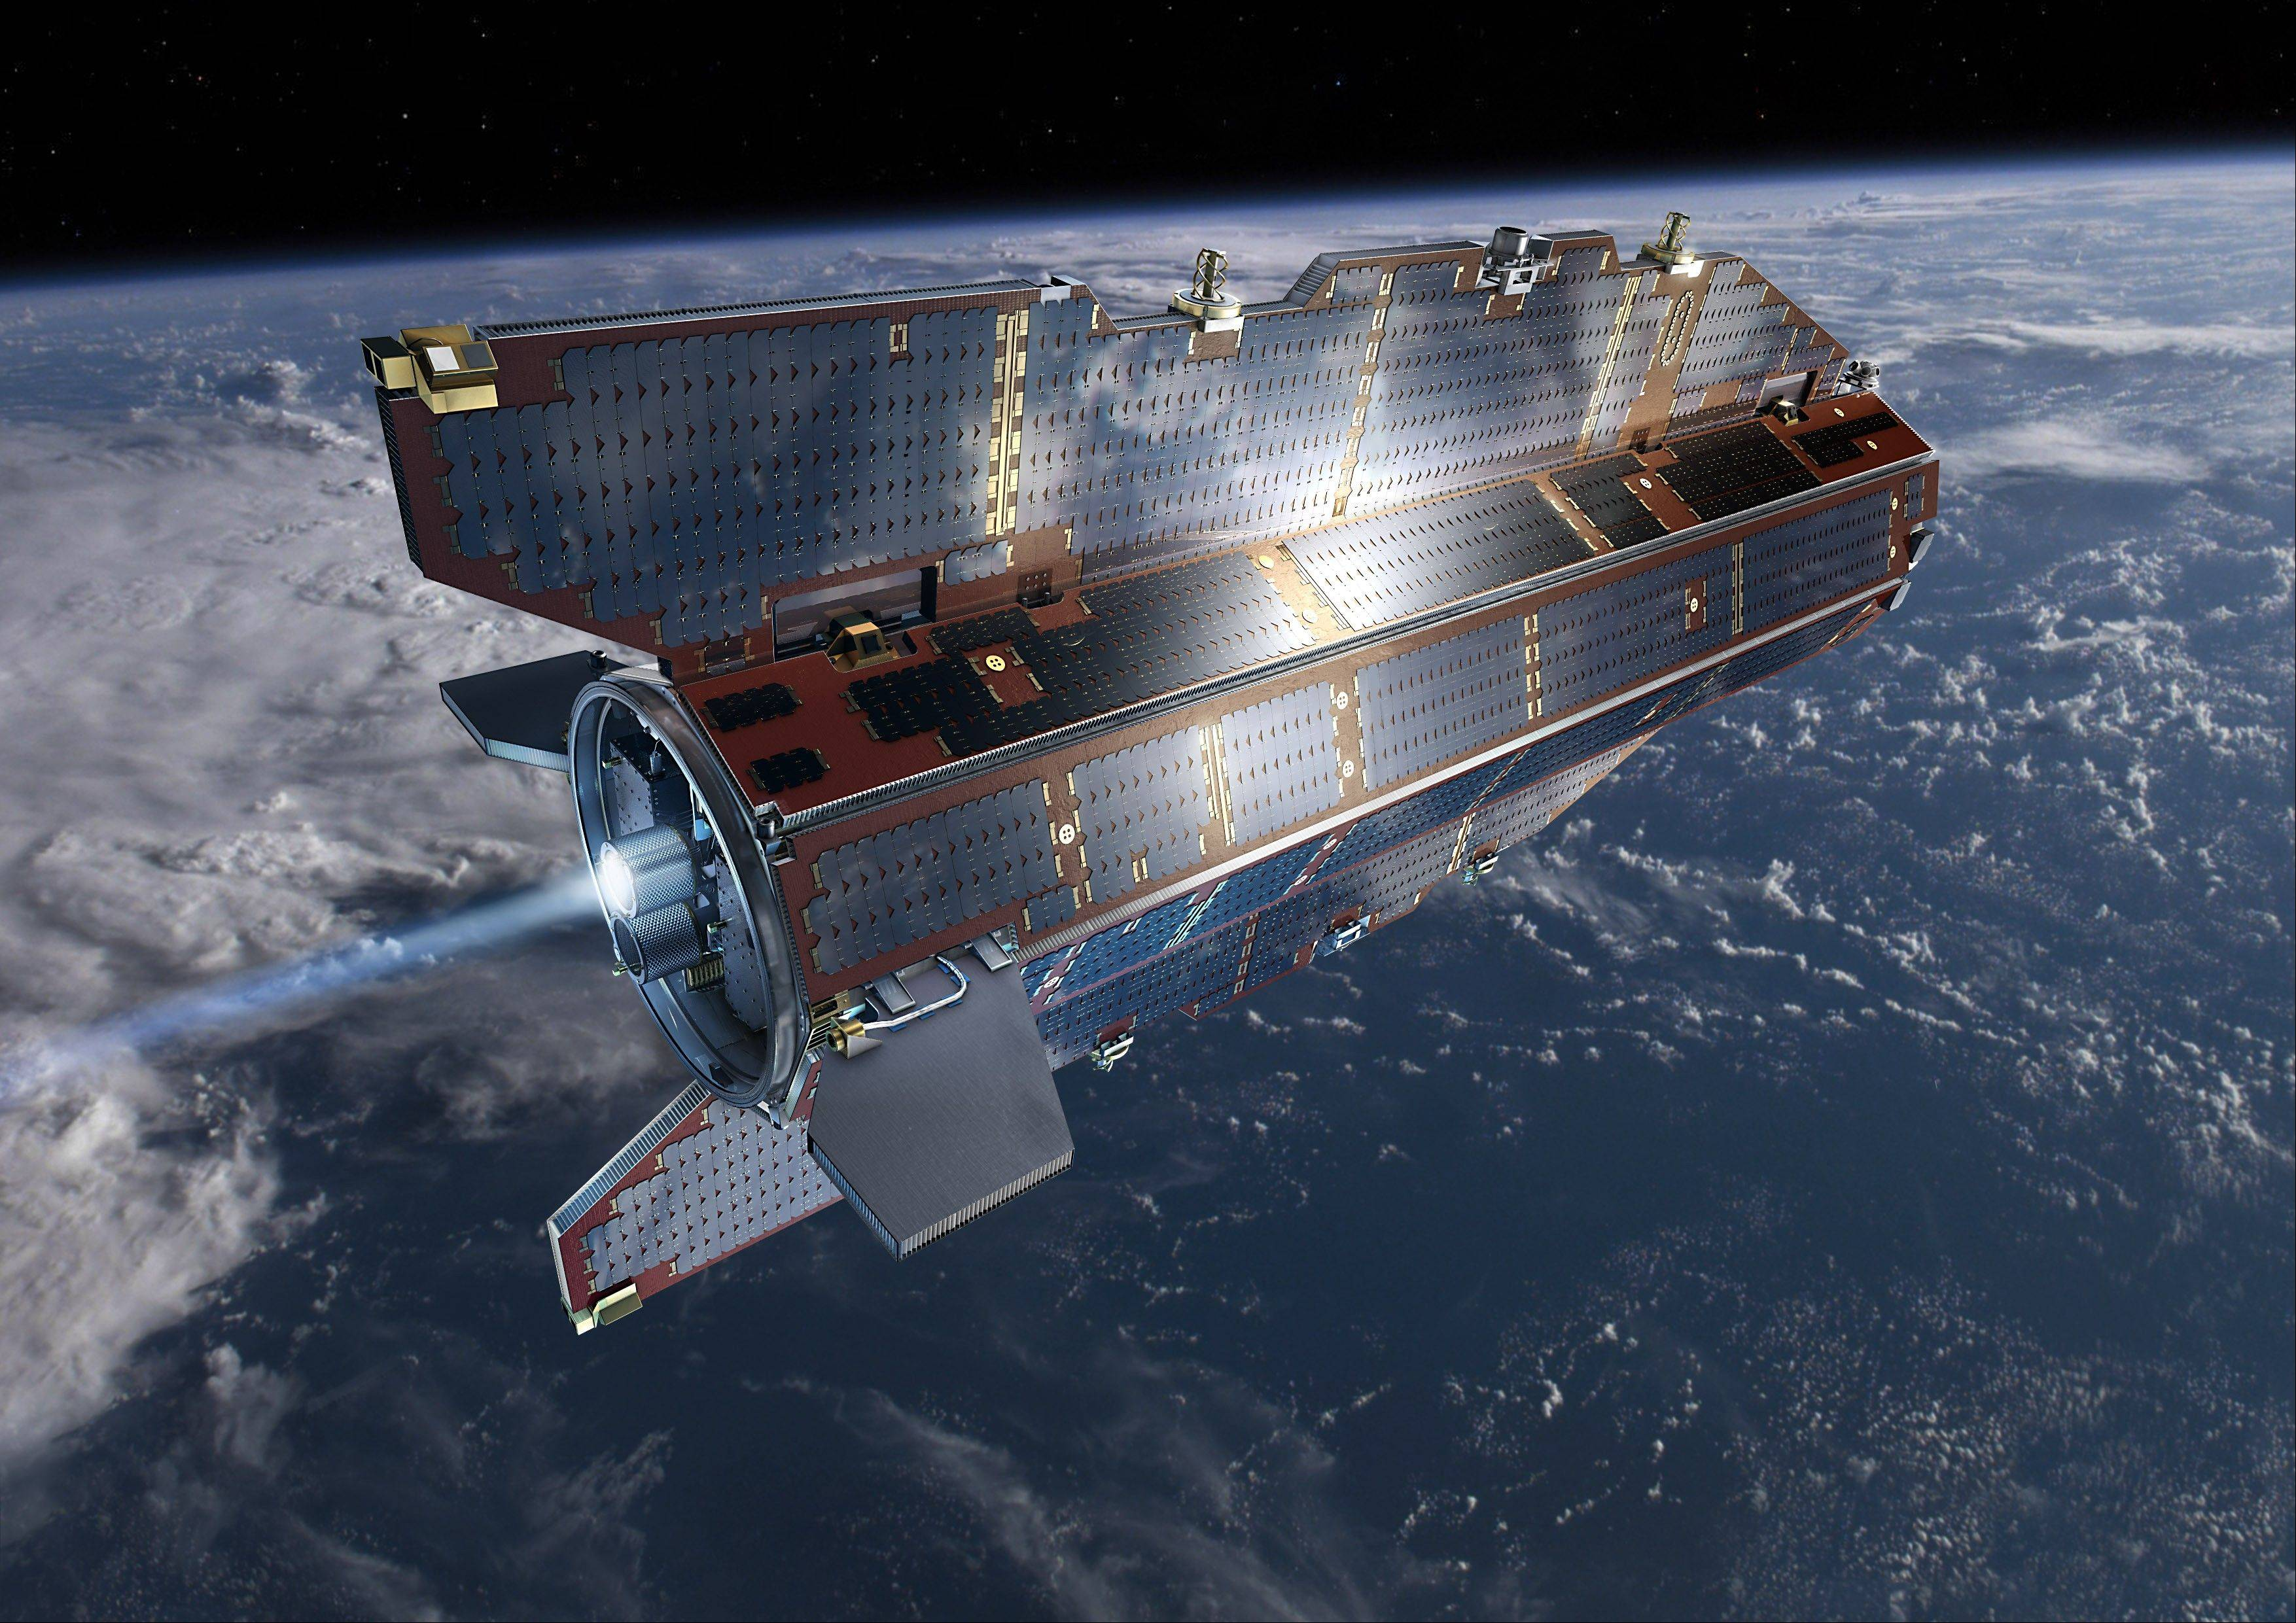 ASSOCIATED PRESS/European Space AgencyThe European Space Agency research satellite GOCE ran out of fuel while in orbit and is likely to re-enter the Earth's atmosphere today. Where and when -- and how much of it will hit the Earth's surface -- is largely guesswork.